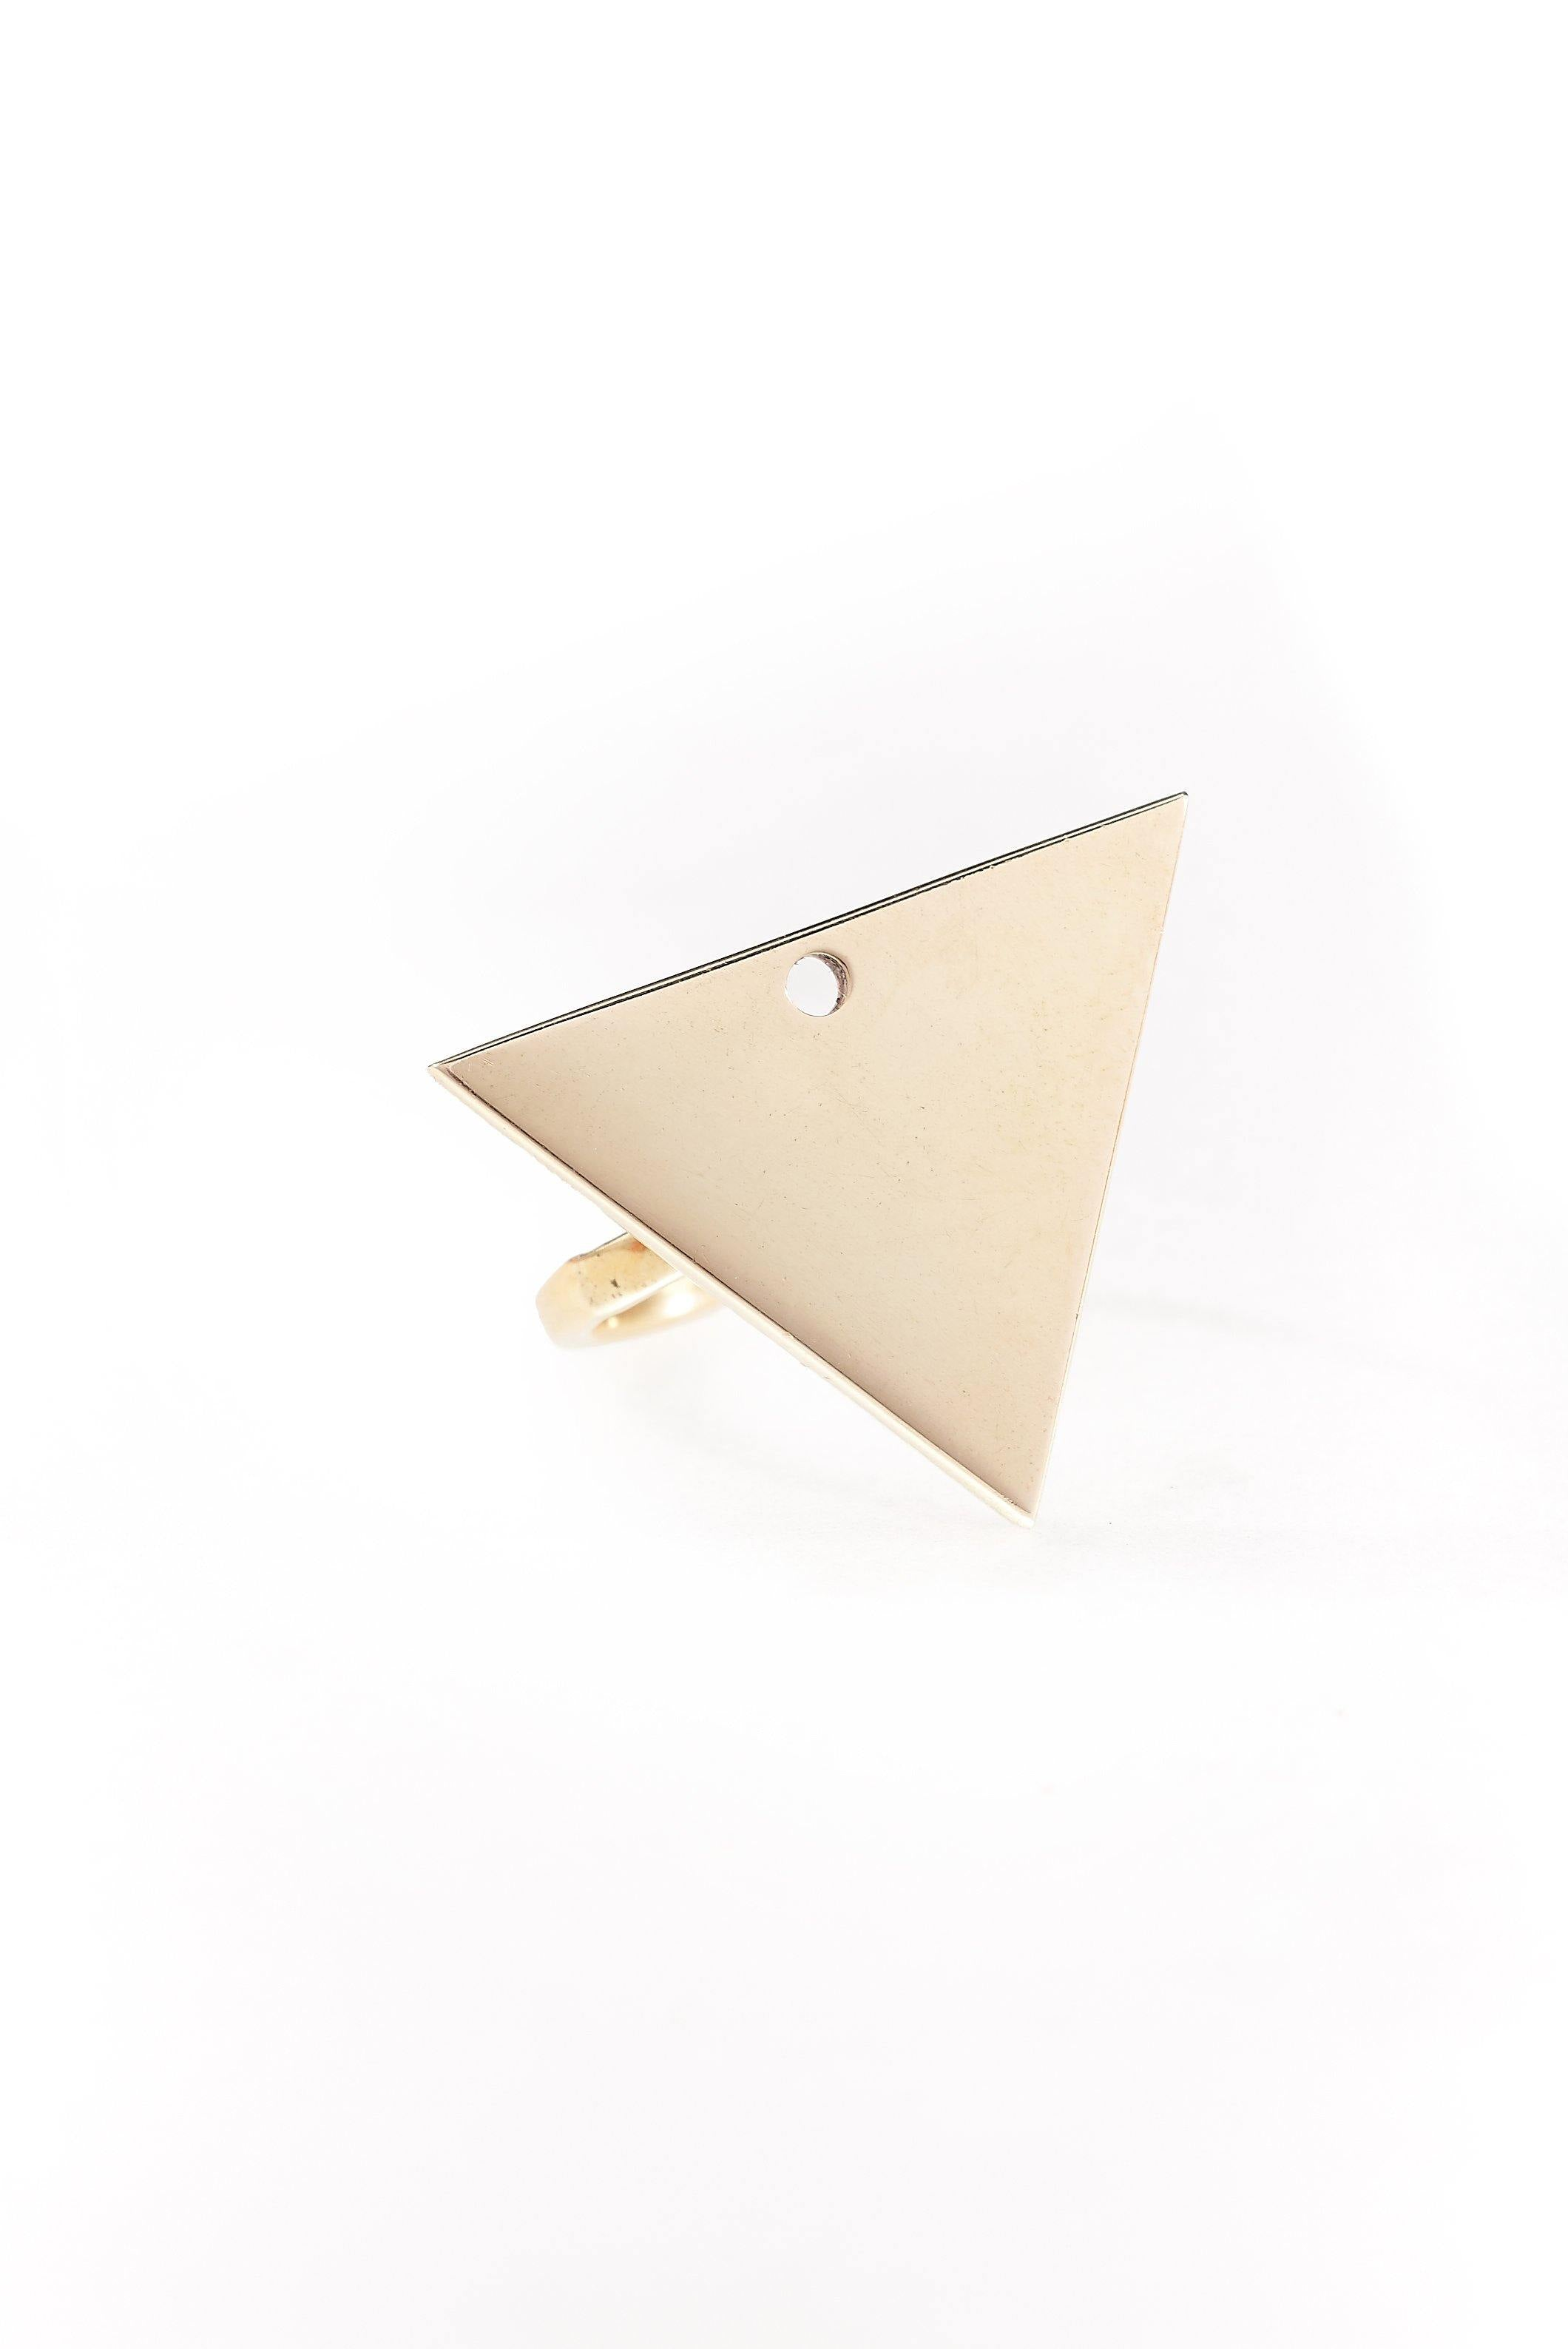 Kipato Unbranded- Pyramid Ring - waafashion